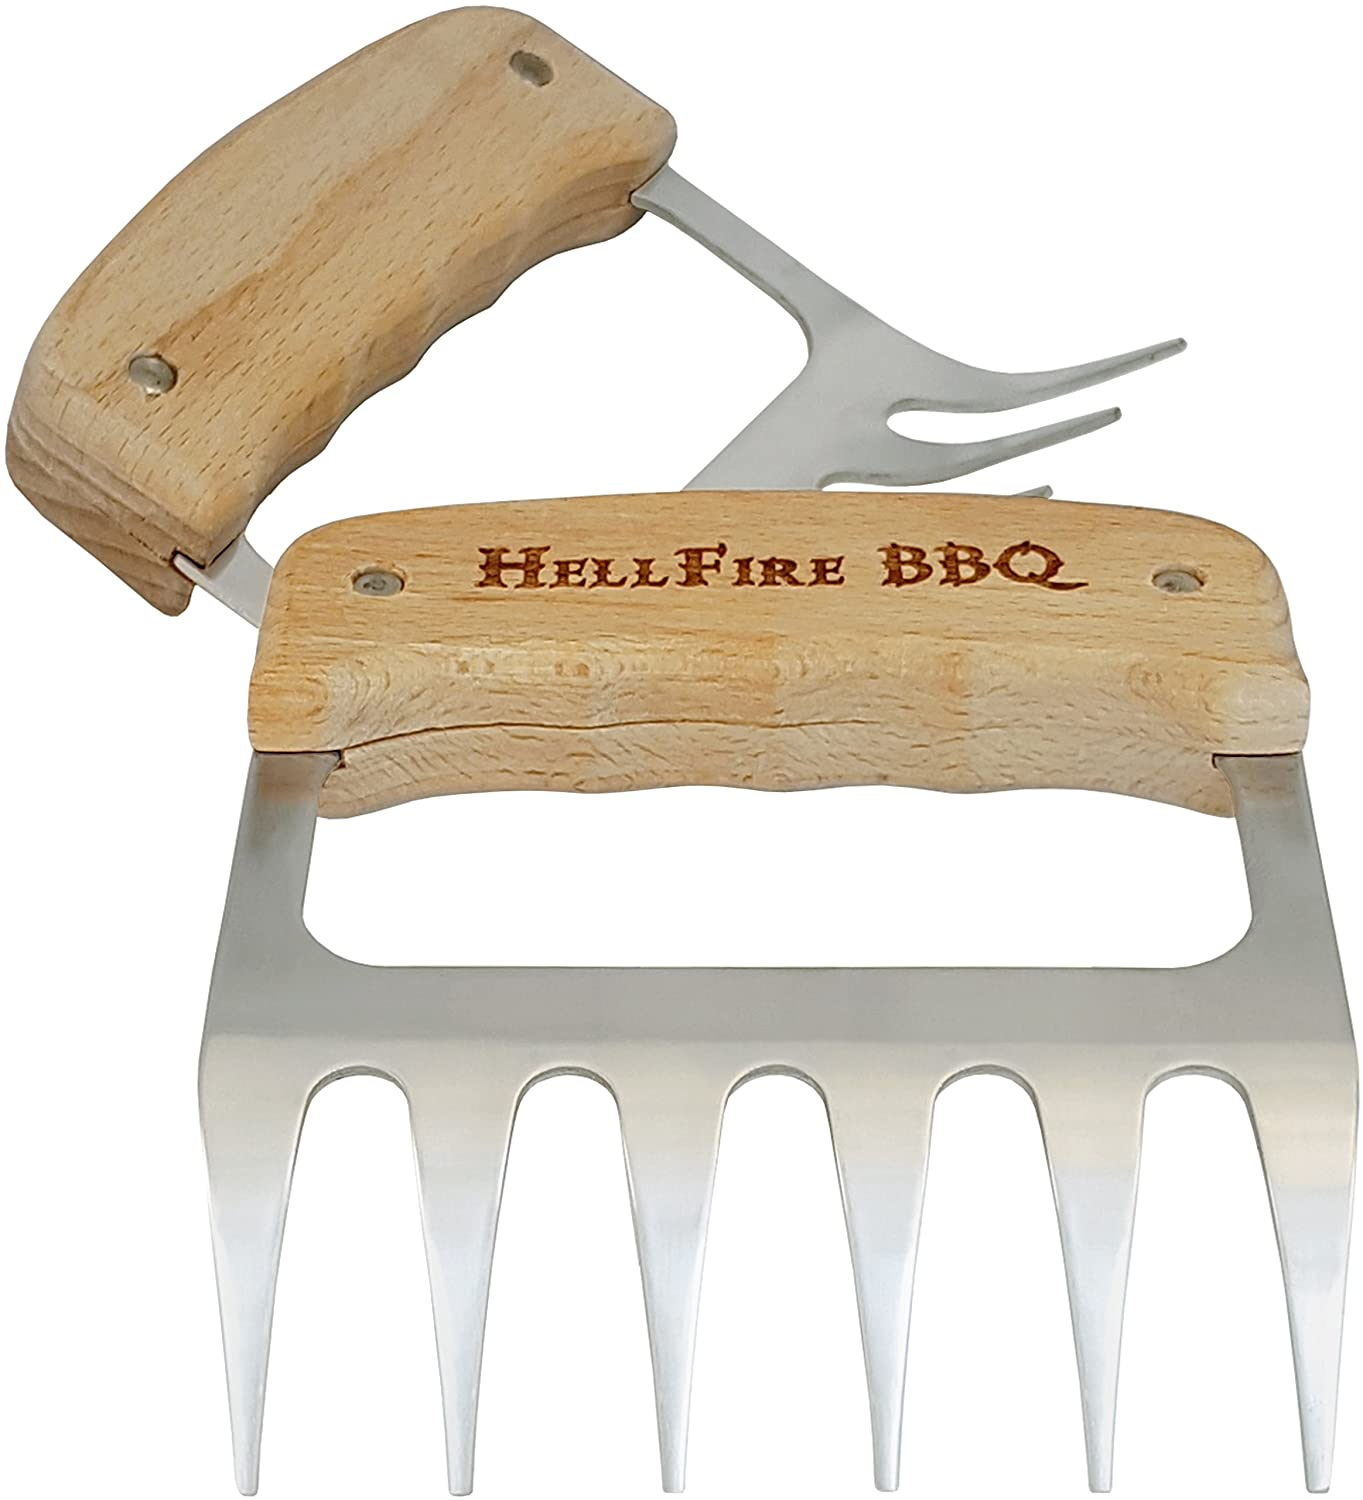 HellFire BBQ Meat Claws - Our Pulled Pork Shredders Feel Like Bear Paws, or Wolverine